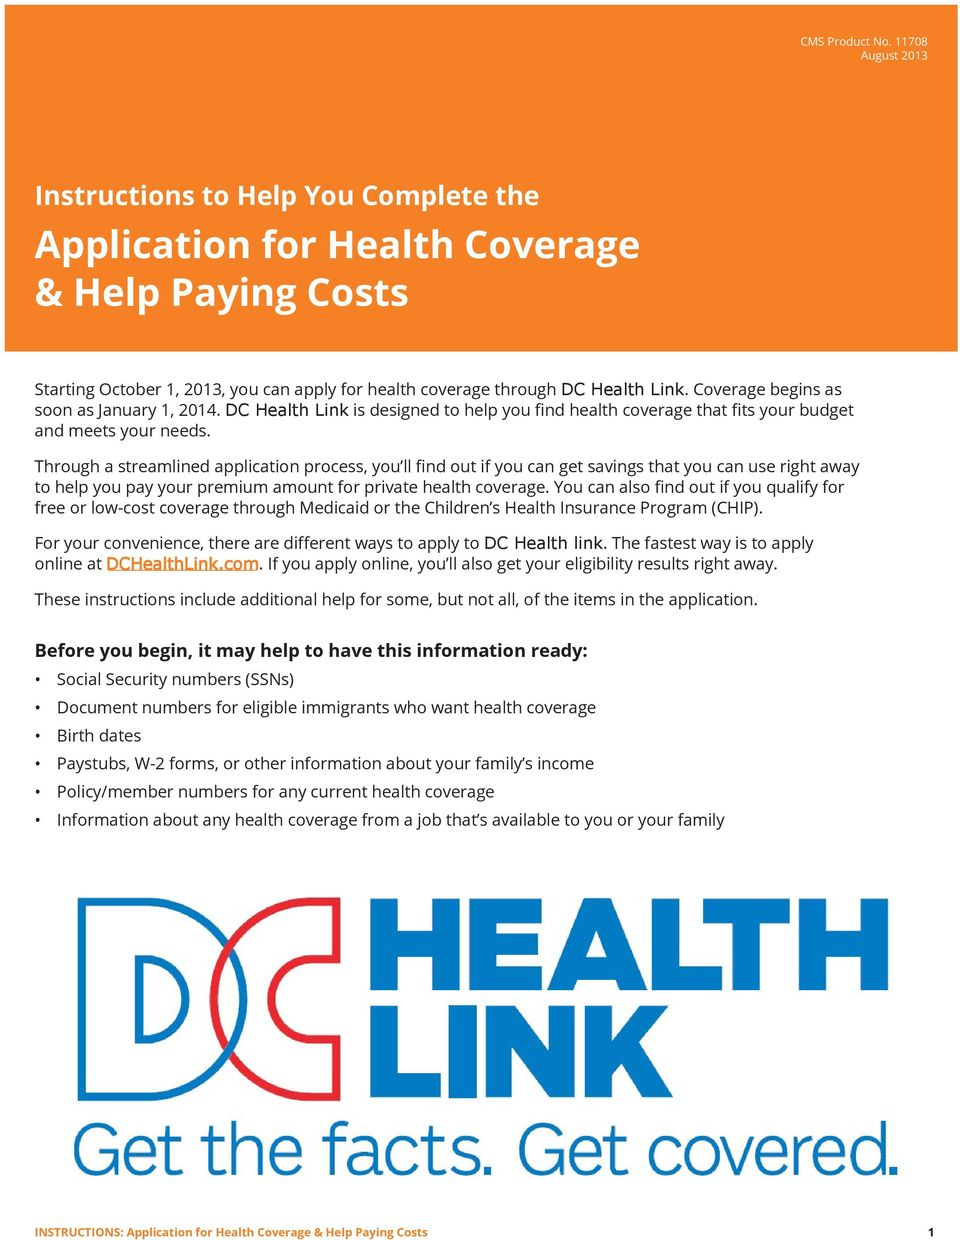 Coverage begins as soon as January 1, 2014. DC Health Link is designed to help you find health coverage that fits your budget and meets your needs.